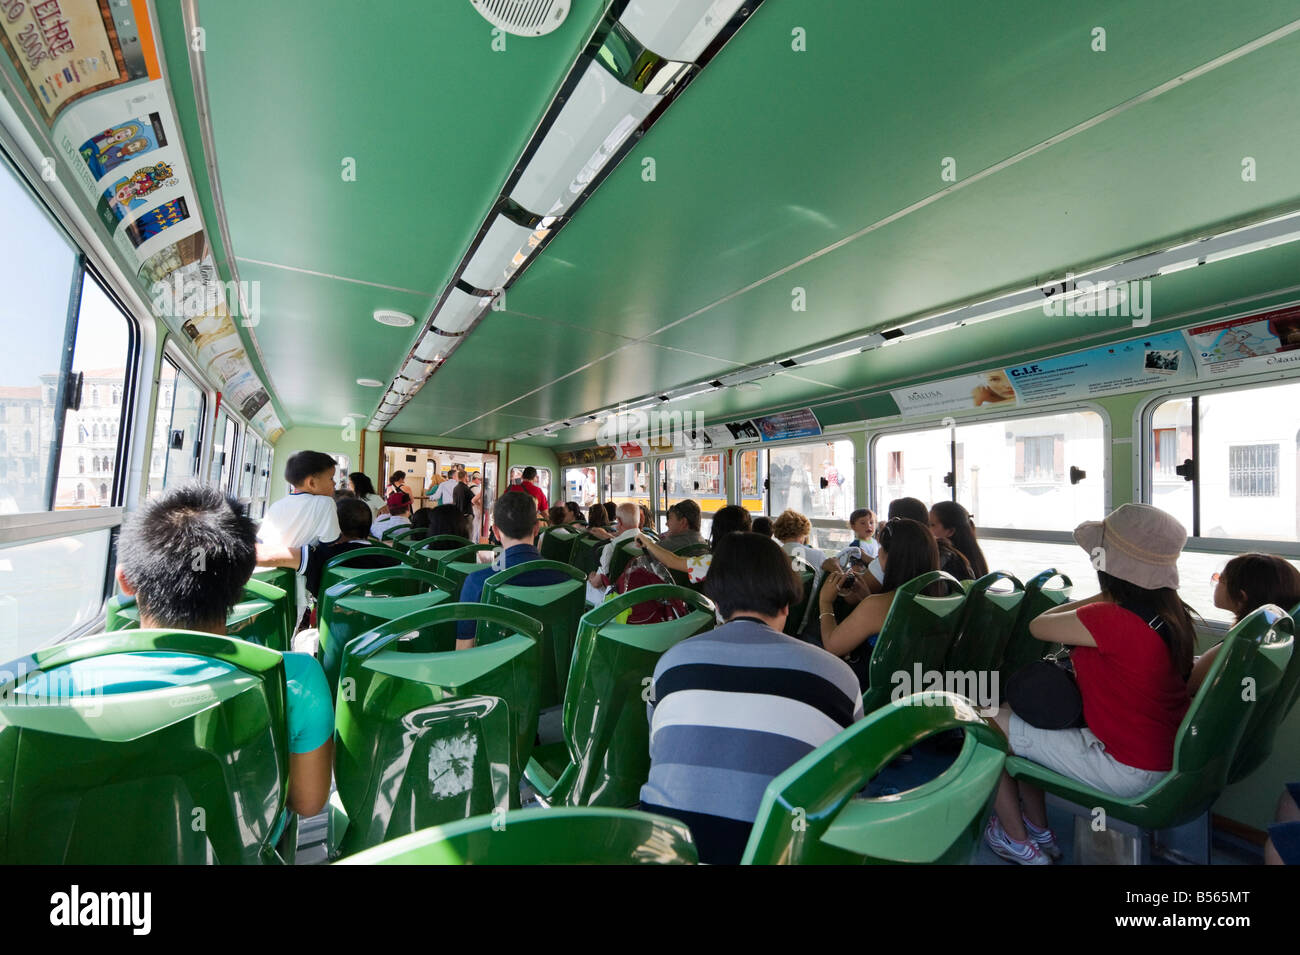 Interior of a vaporetto or water bus on the Grand Canal, Venice, Veneto, Italy - Stock Image